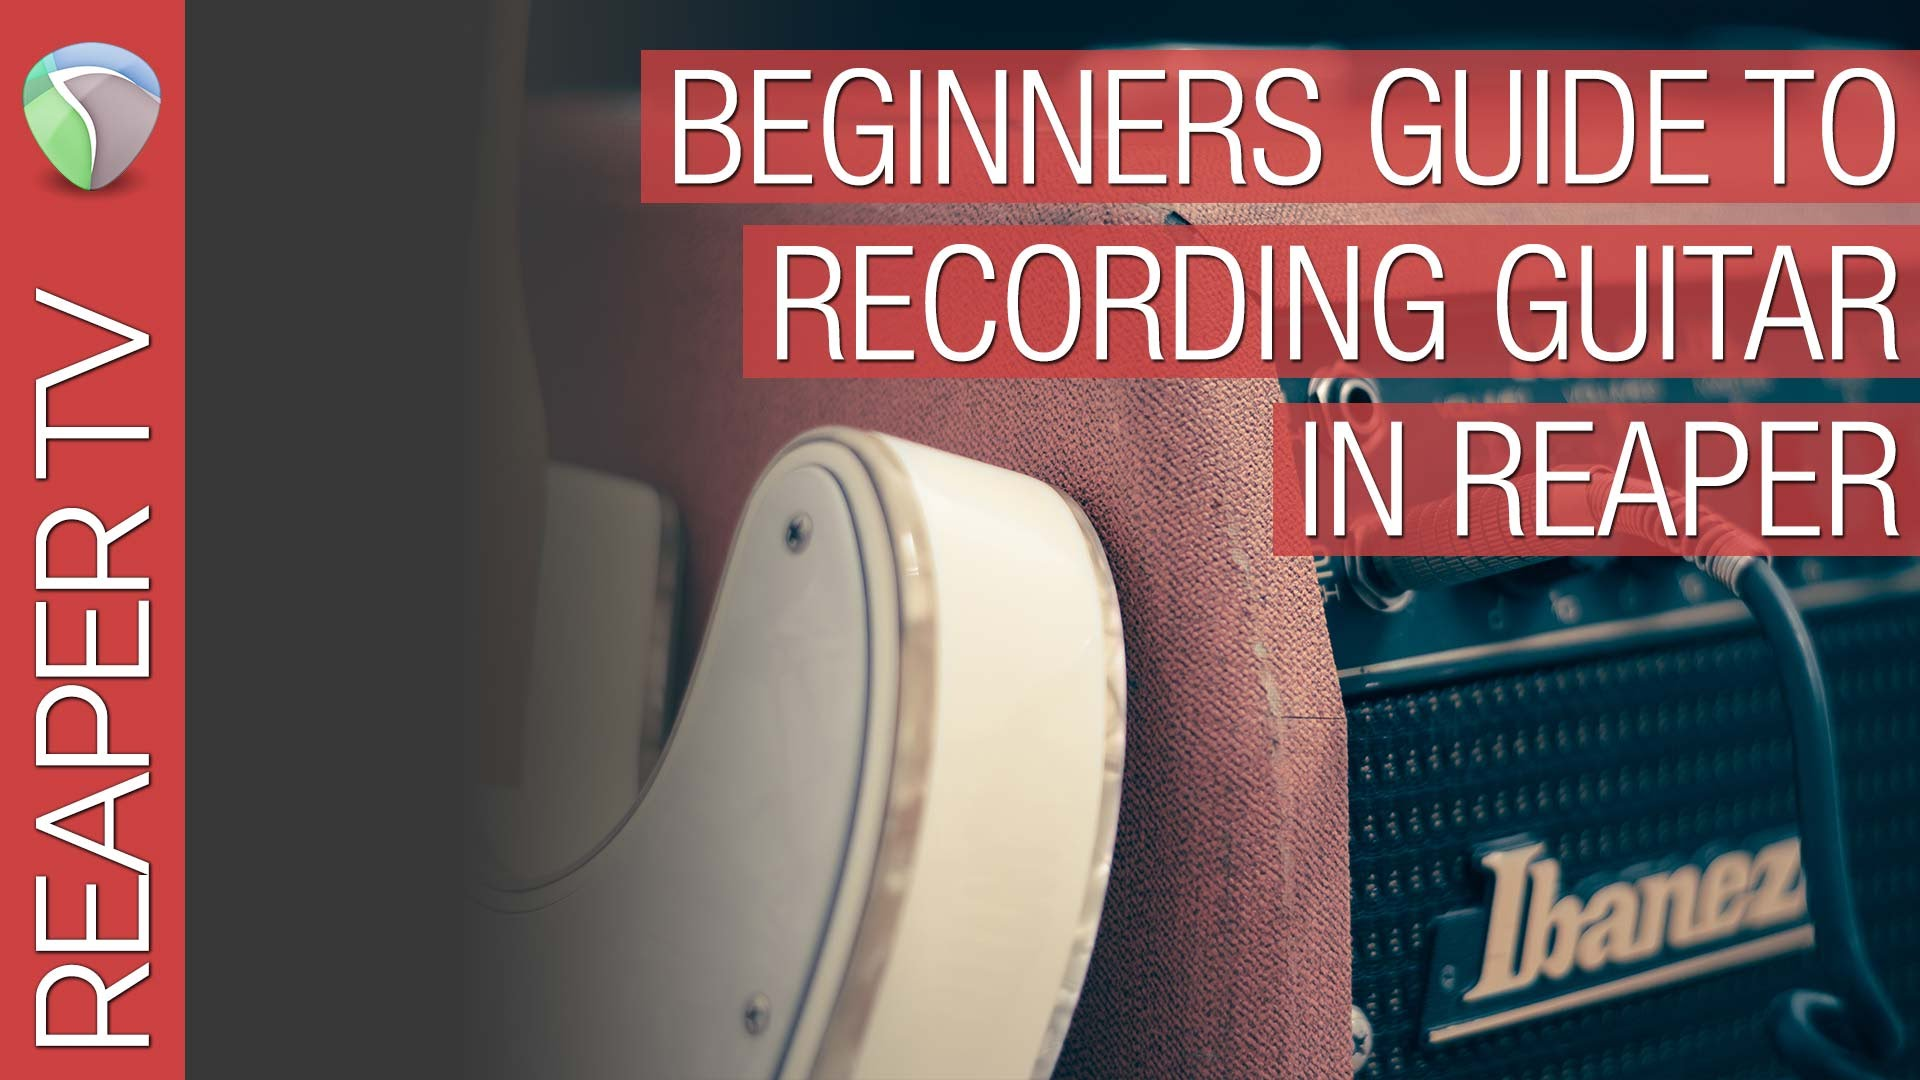 Beginners Guide to Recording Guitar & Amp Sims like Bias FX or EZ Mix2